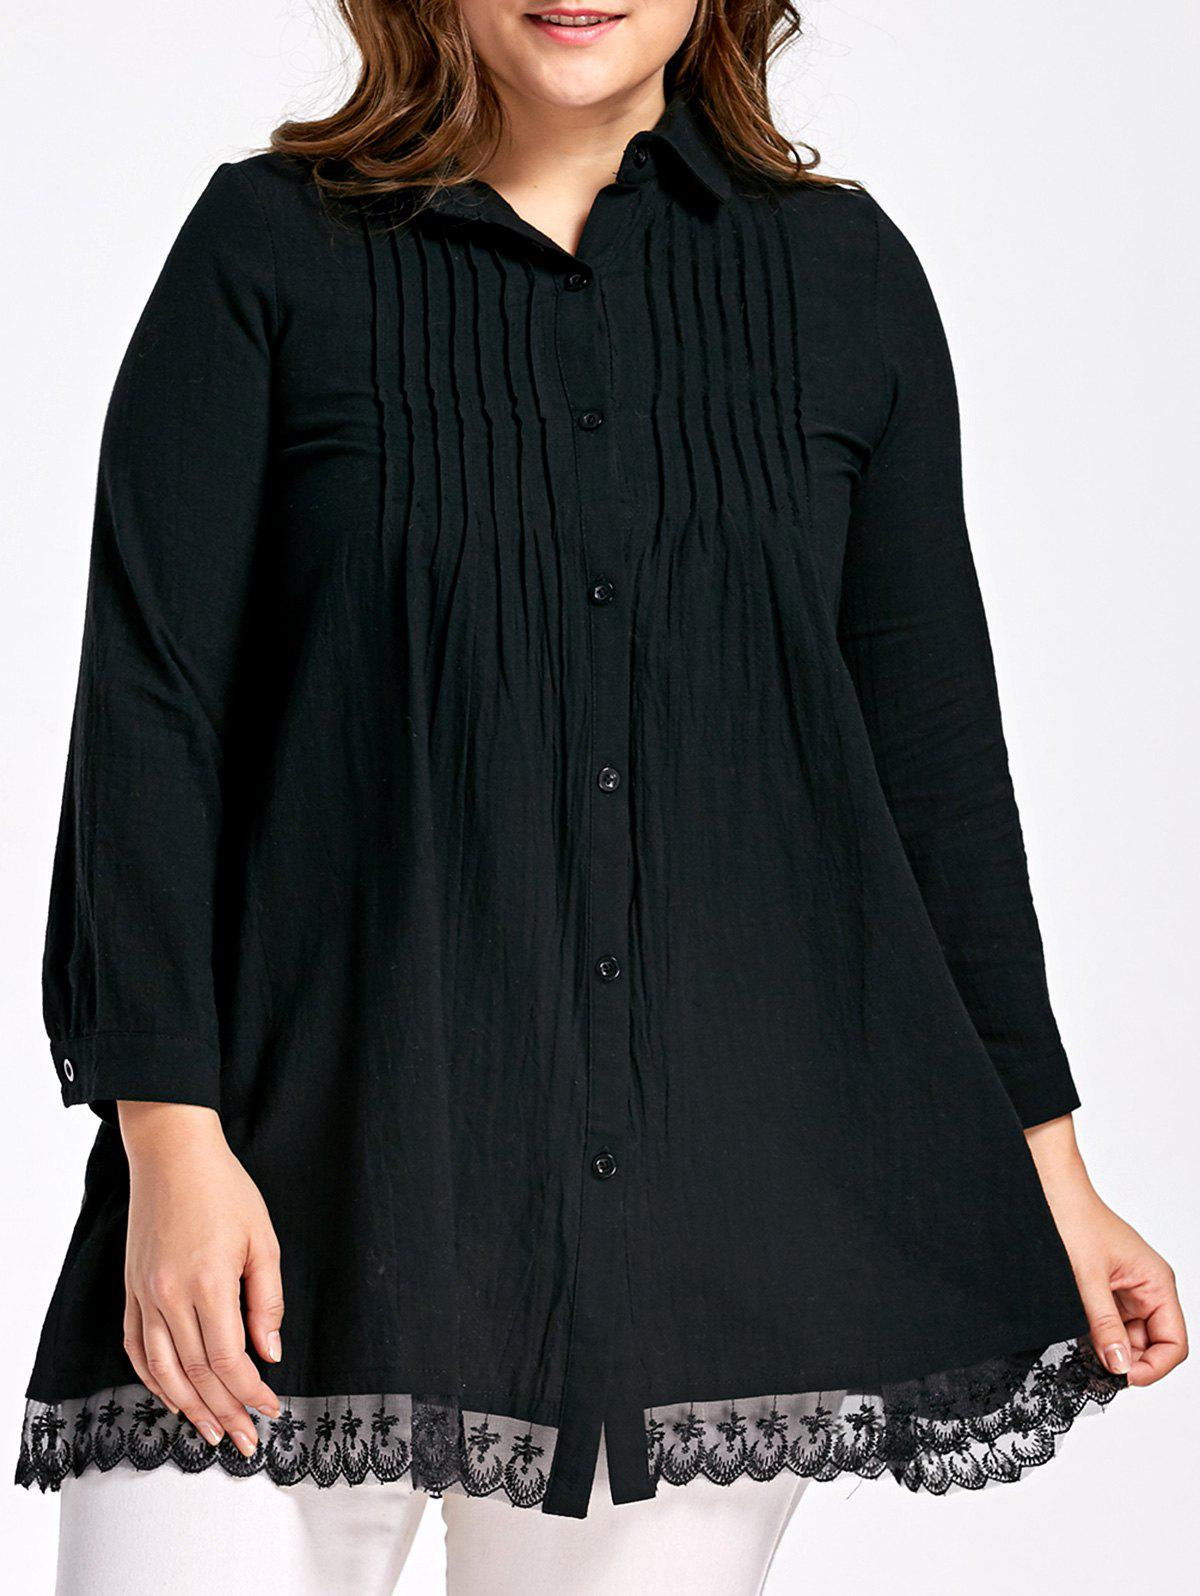 Pleated Plus Size Button Up BlouseWOMEN<br><br>Size: 5XL; Color: BLACK; Material: Polyester,Spandex; Shirt Length: Long; Sleeve Length: Full; Collar: Shirt Collar; Style: Fashion; Season: Fall,Spring; Pattern Type: Solid; Weight: 0.3000kg; Package Contents: 1 x Blouse;